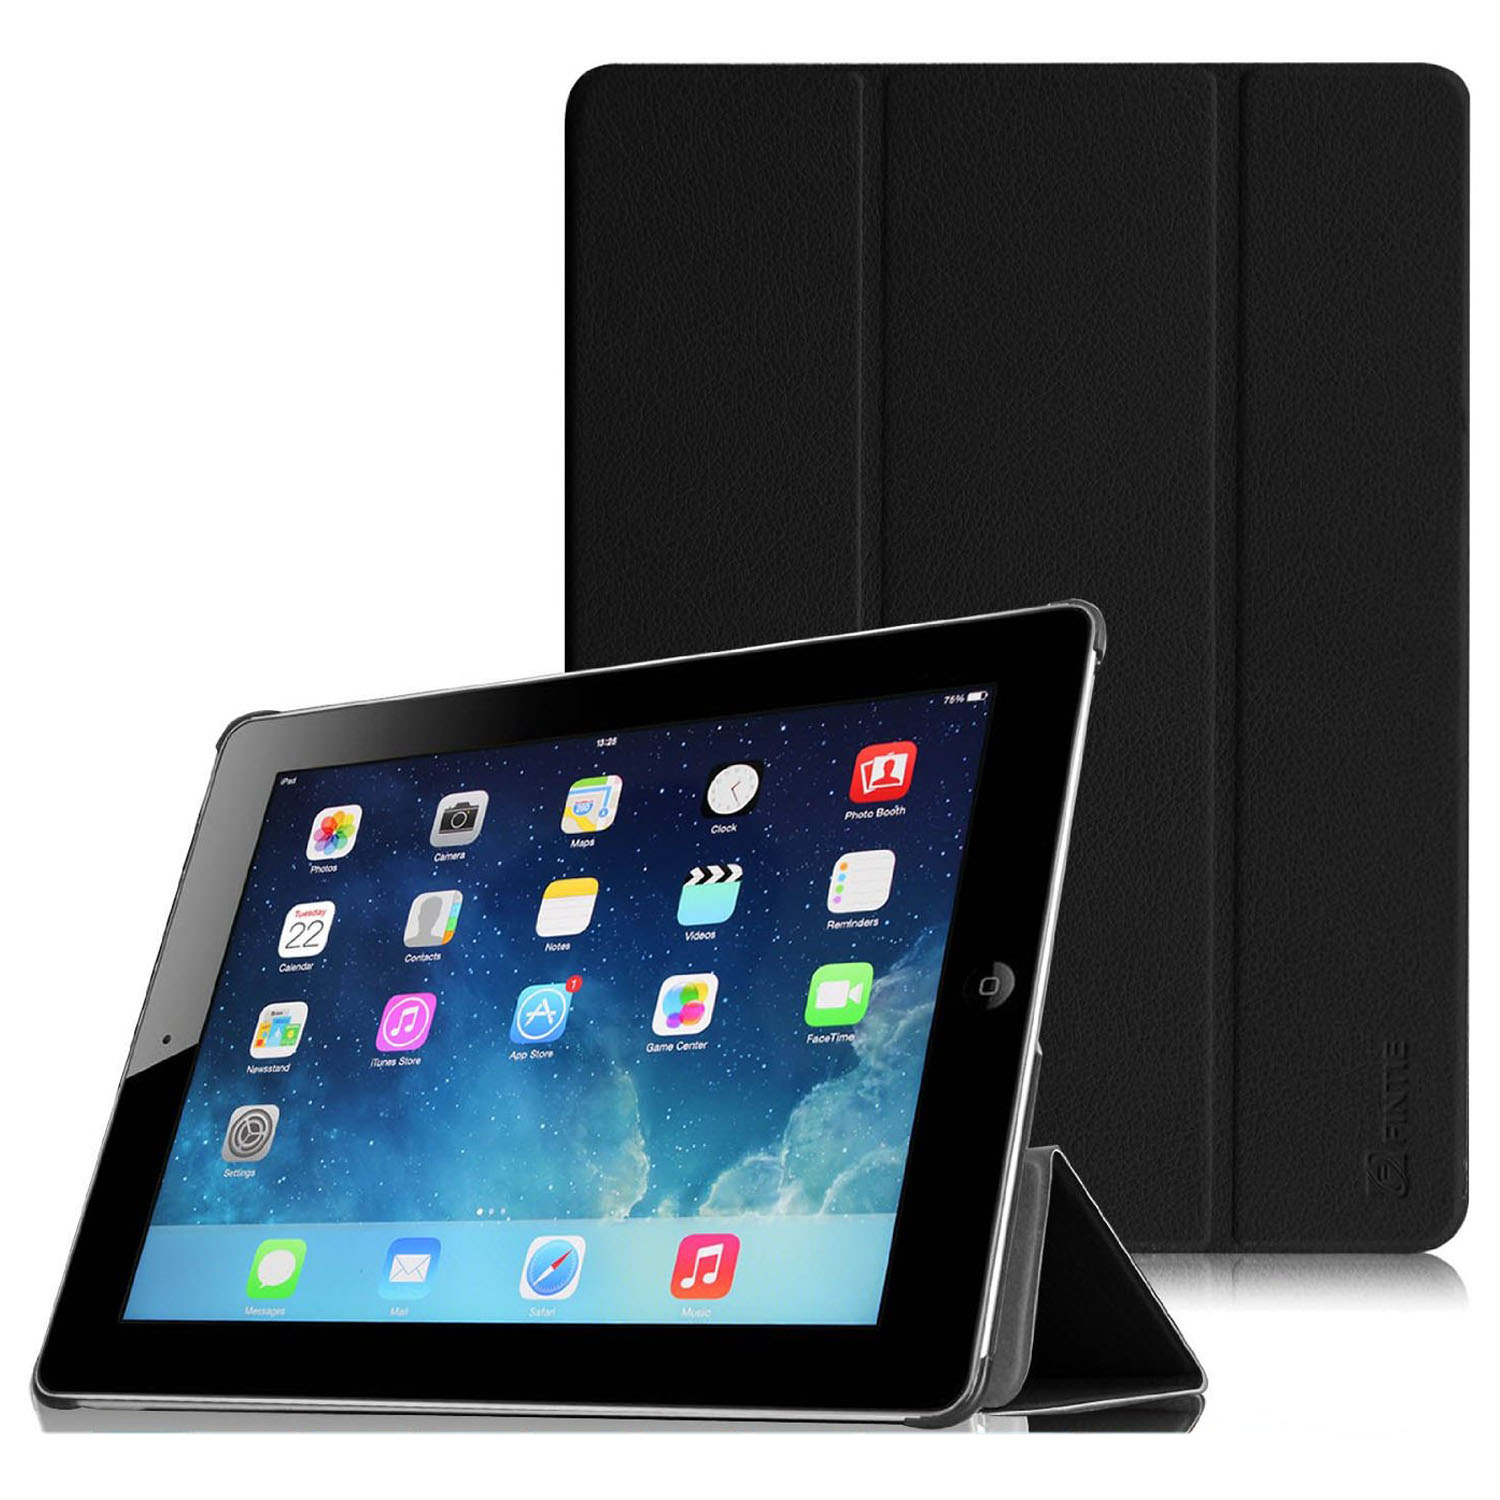 Fintie SmartShell Case for Apple iPad 4th Generation with Retina Display, iPad 3 & iPad 2, Black